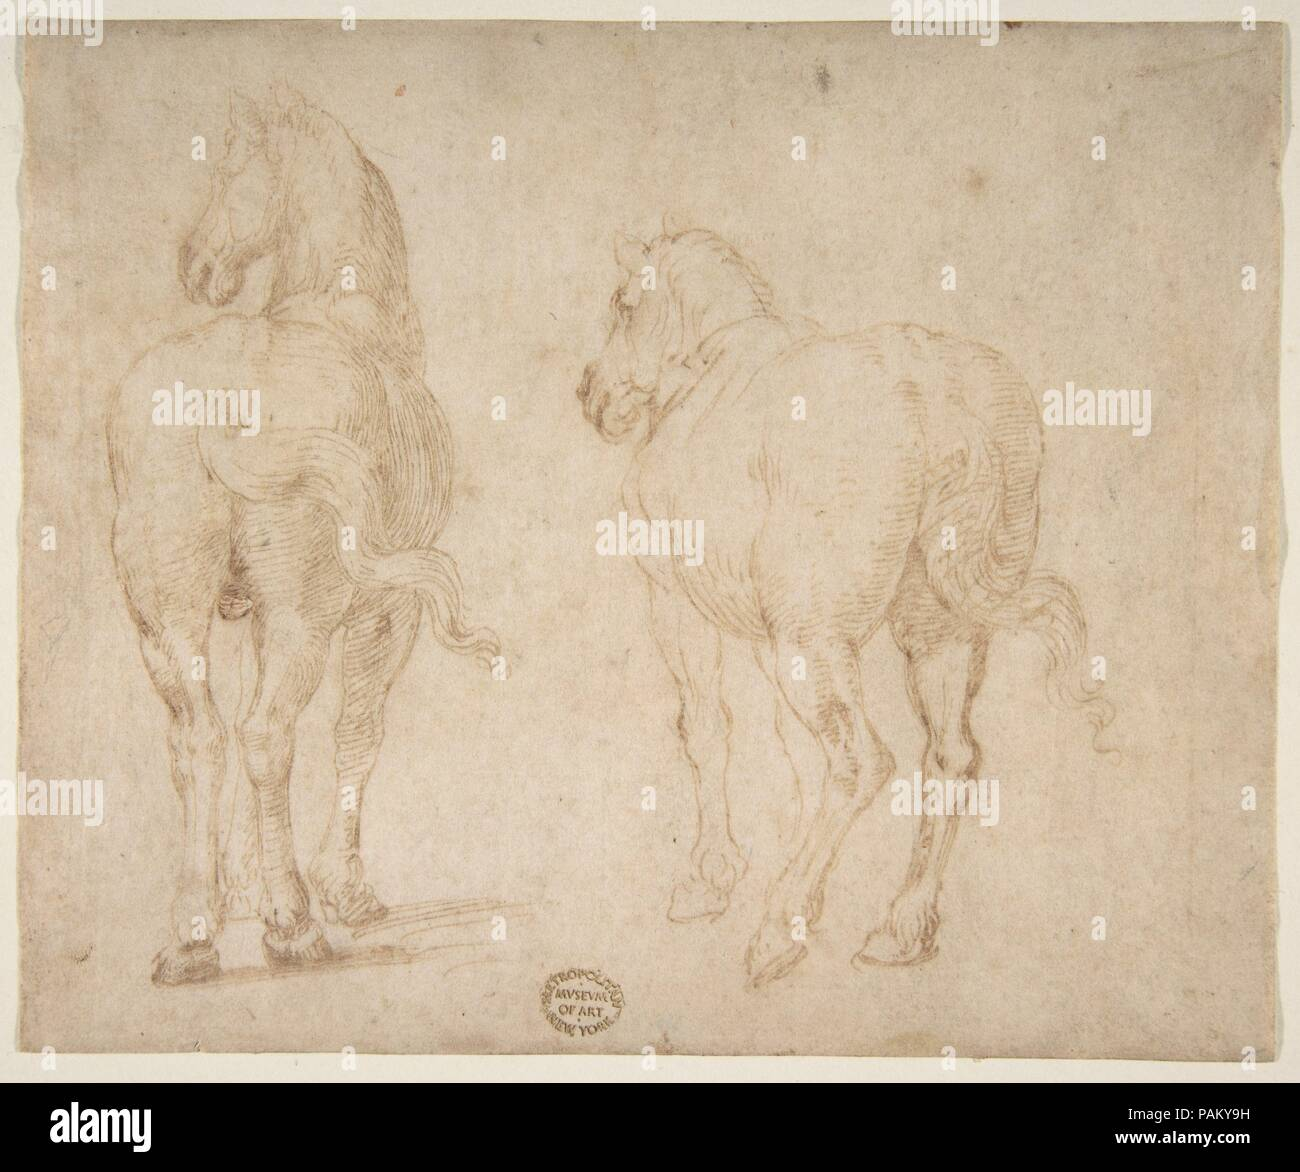 Horses. Artist: Parmigianino (Girolamo Francesco Maria Mazzola) (Italian, Parma 1503-1540 Casalmaggiore). Dimensions: 5 3/4 x 7in. (14.6 x 17.8cm). Former Attribution: Formerly attributed to Francesco Allegrini (Italian, Cantiano (?) 1615/20-after 1679 Gubbio (?)). Date: 1530-40.  Previously assigned to a seventeenth-century Italian artist, Francesco Allegrini, the sheet has been reattributed, based on stylistic considerations, to a major artist who lived more than a century earlier.  The handling of the pen and the anatomical type of the horses are entirely characteristic of Parmigianino. Par Stock Photo